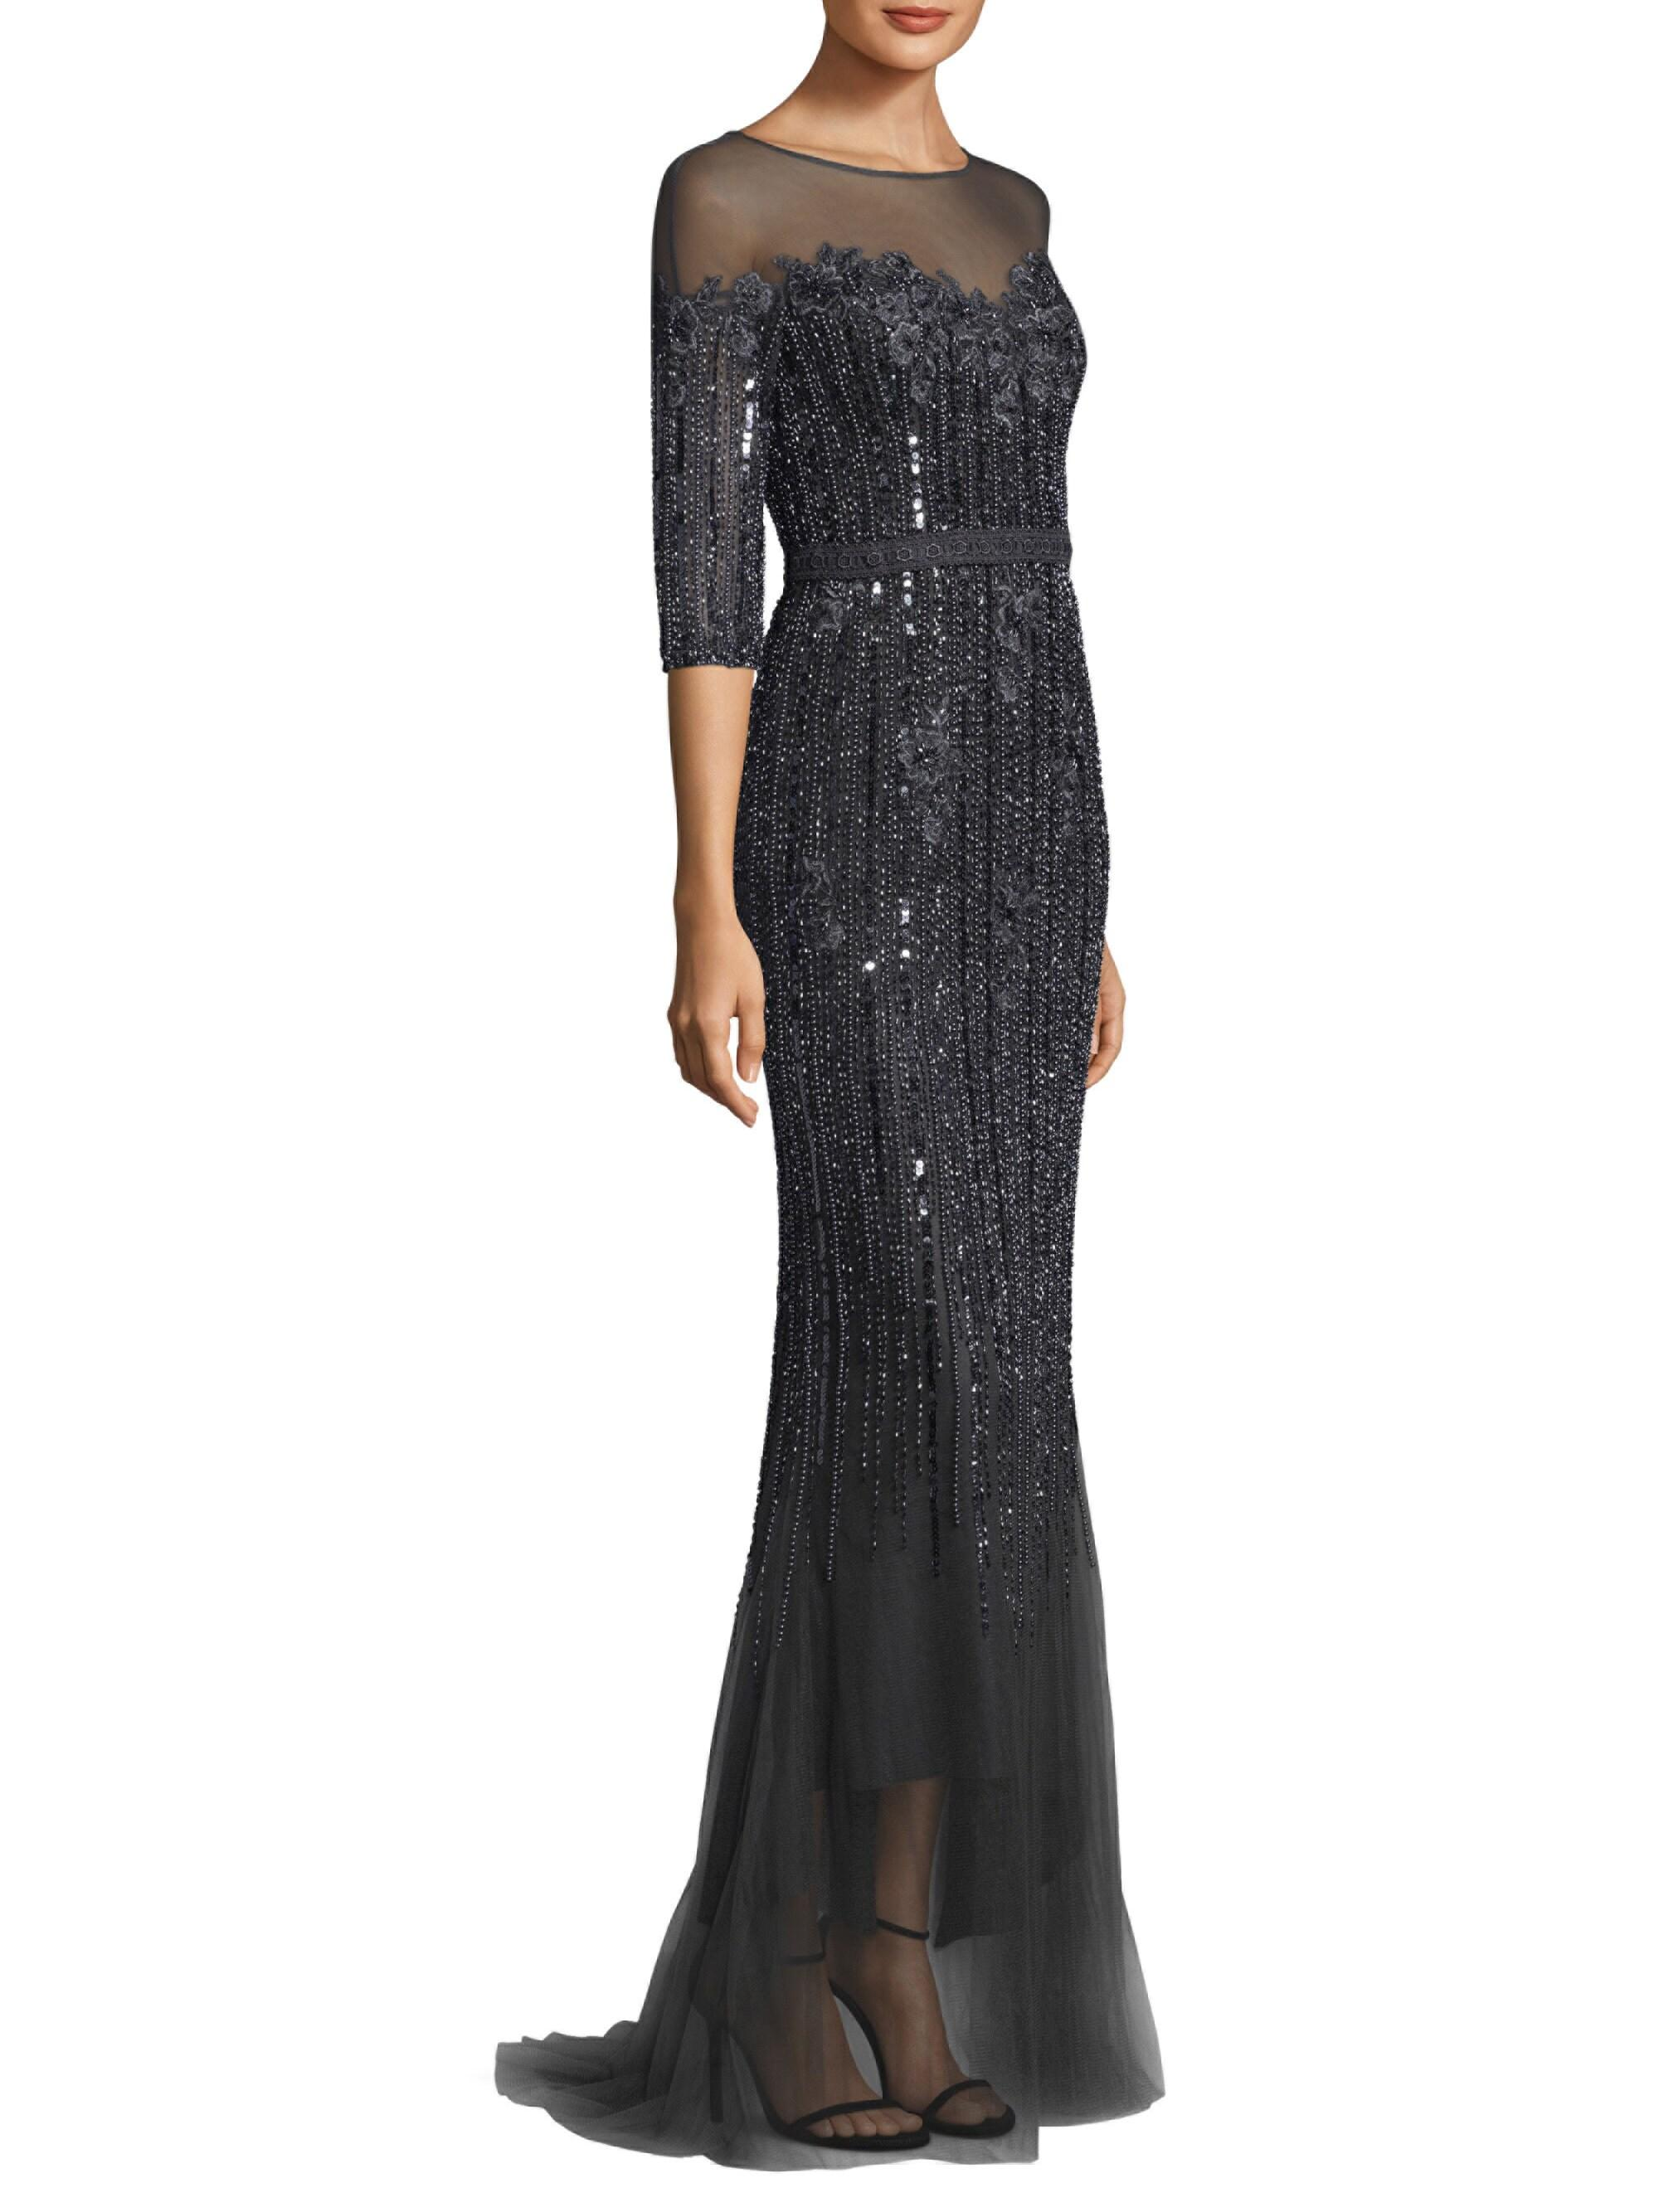 055d77390a5 Basix Black Label Women s Mesh Embellished Gown - Charcoal in Gray - Lyst